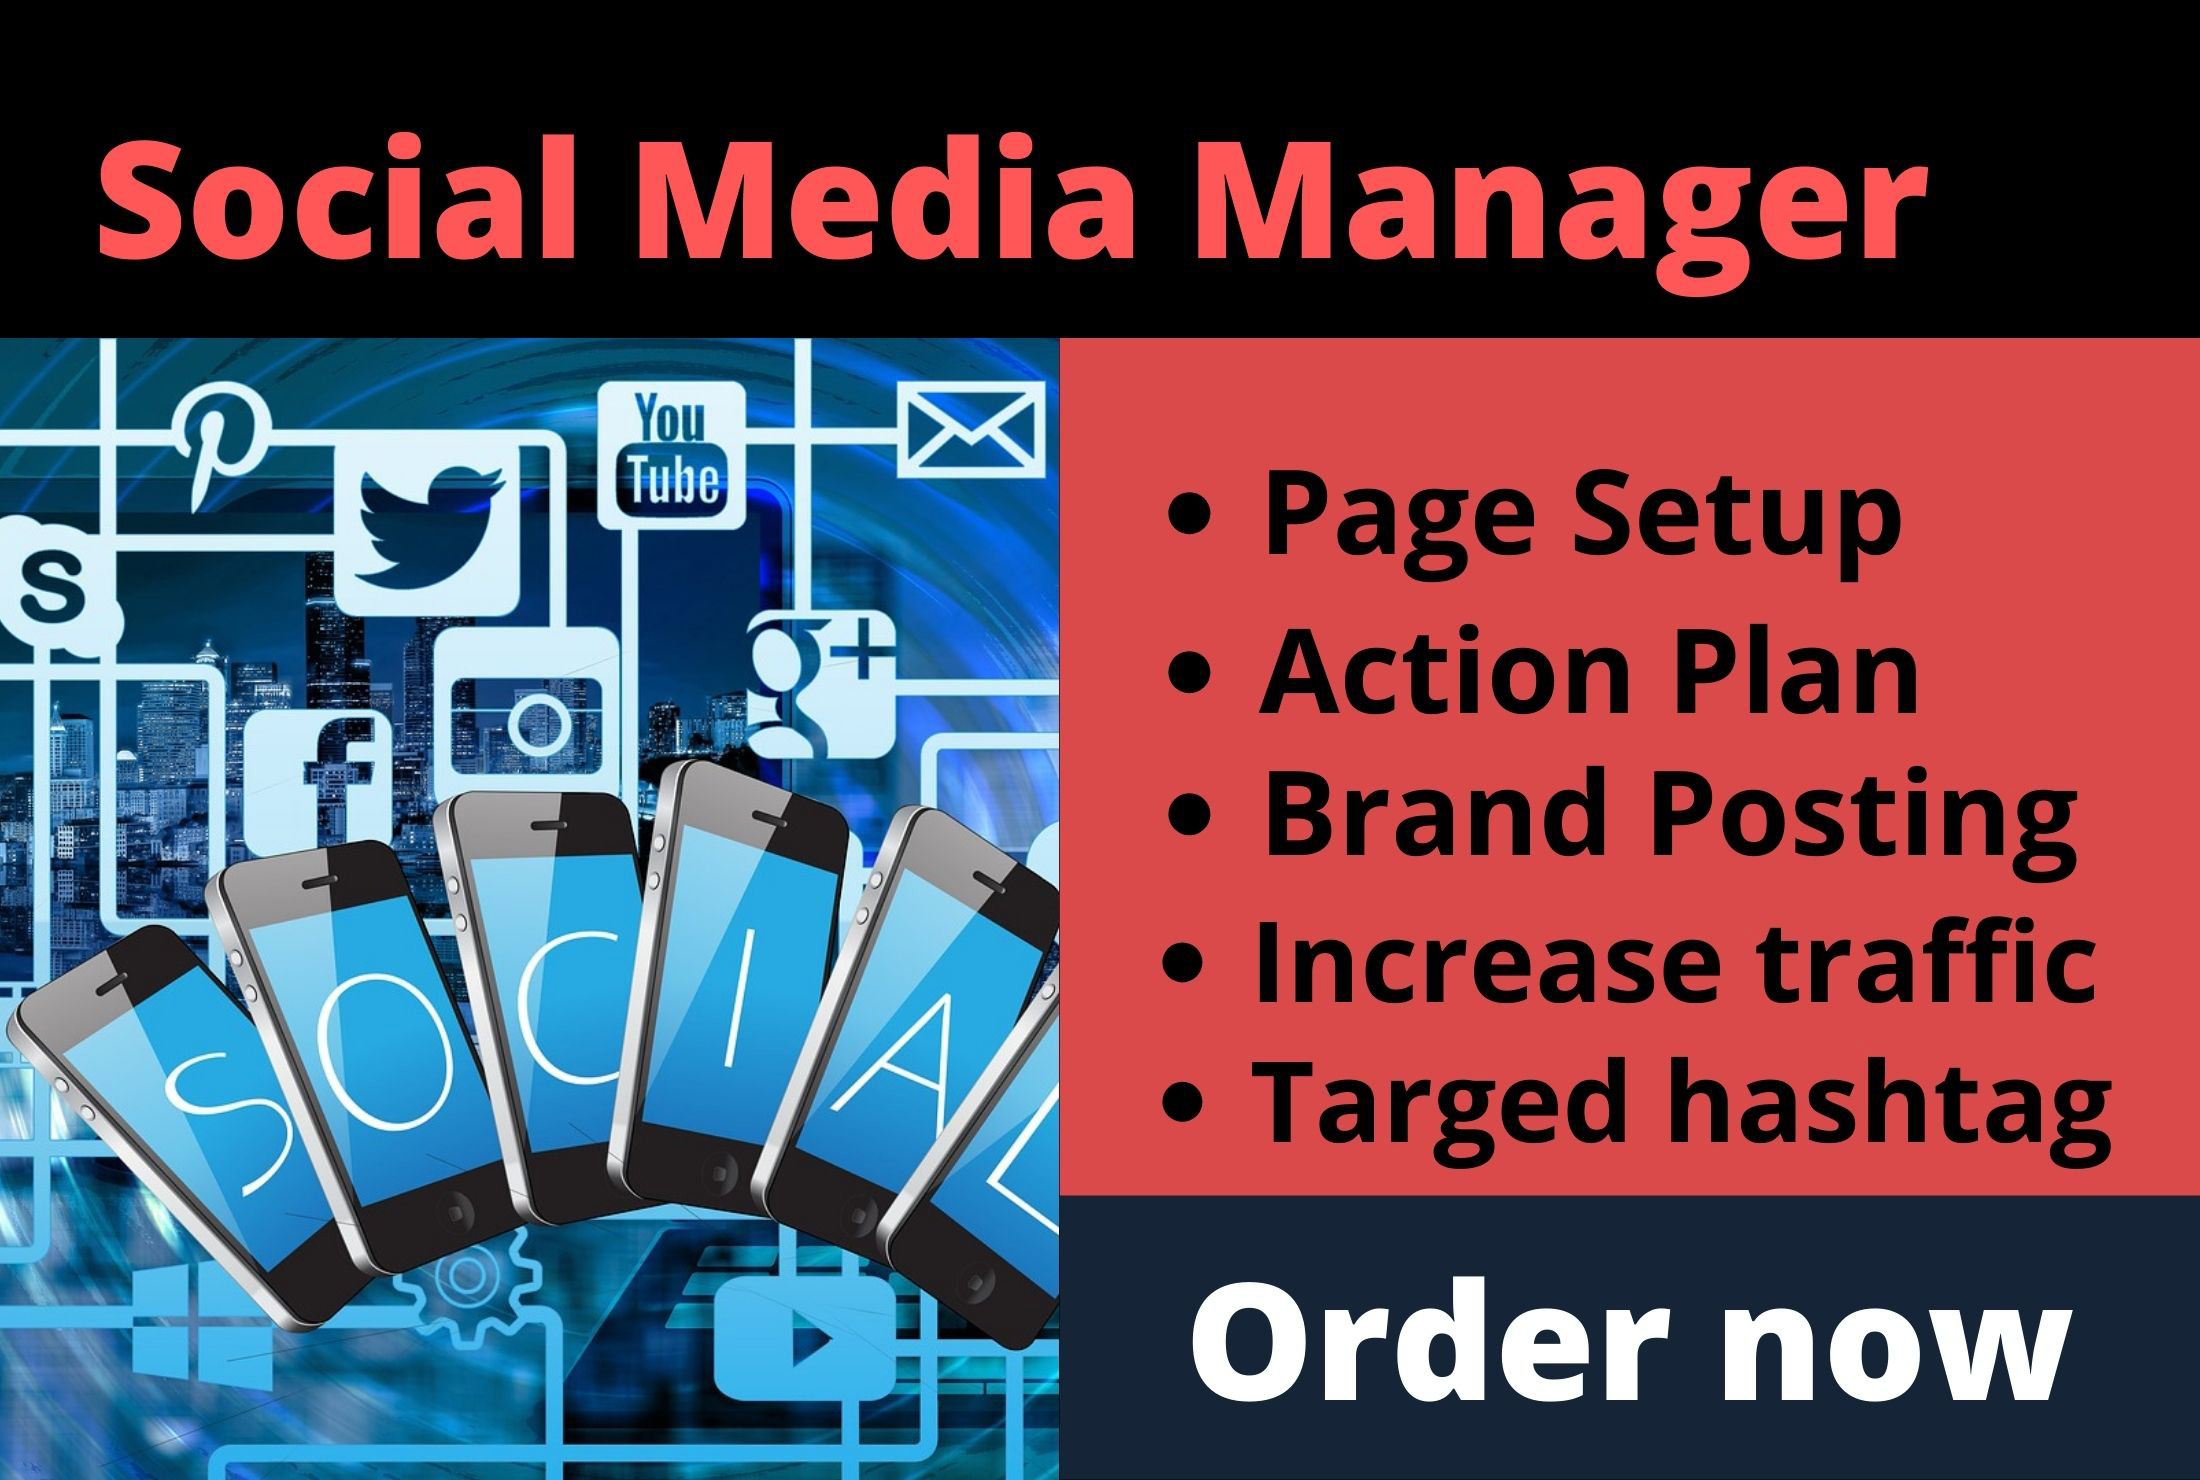 I will be your Social Media Manager for Personal Management